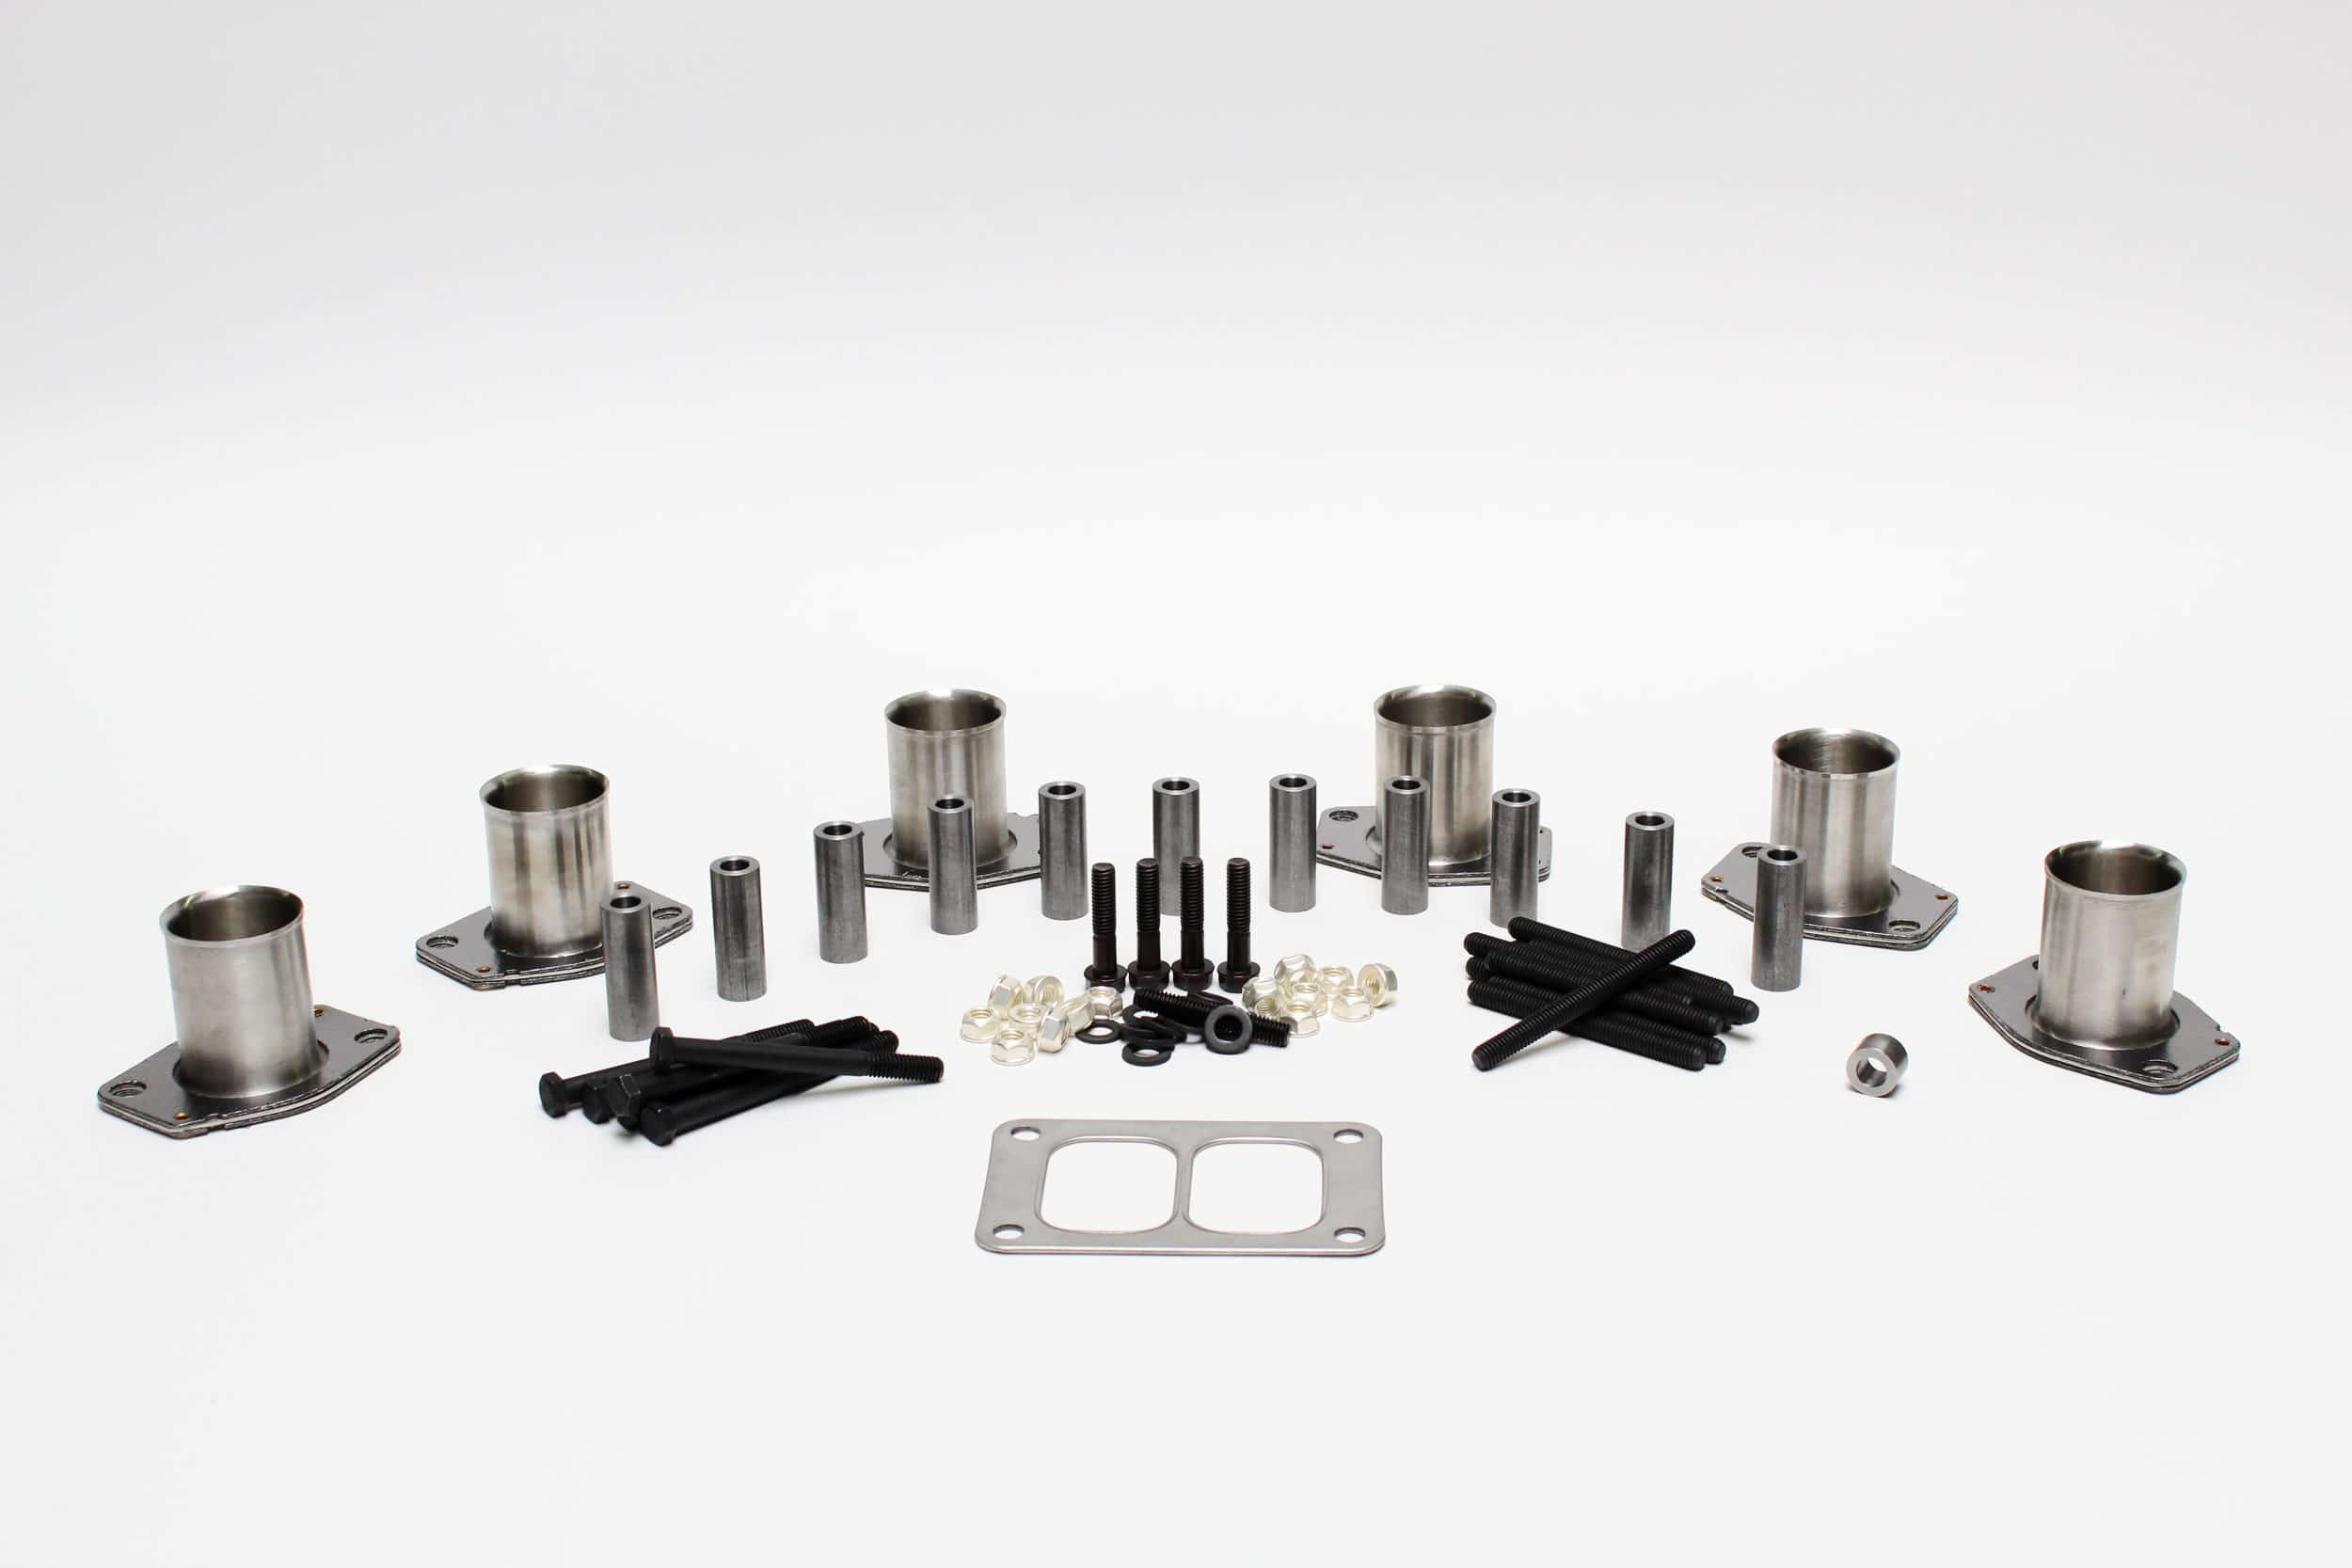 ipd exhaust manifold service kit